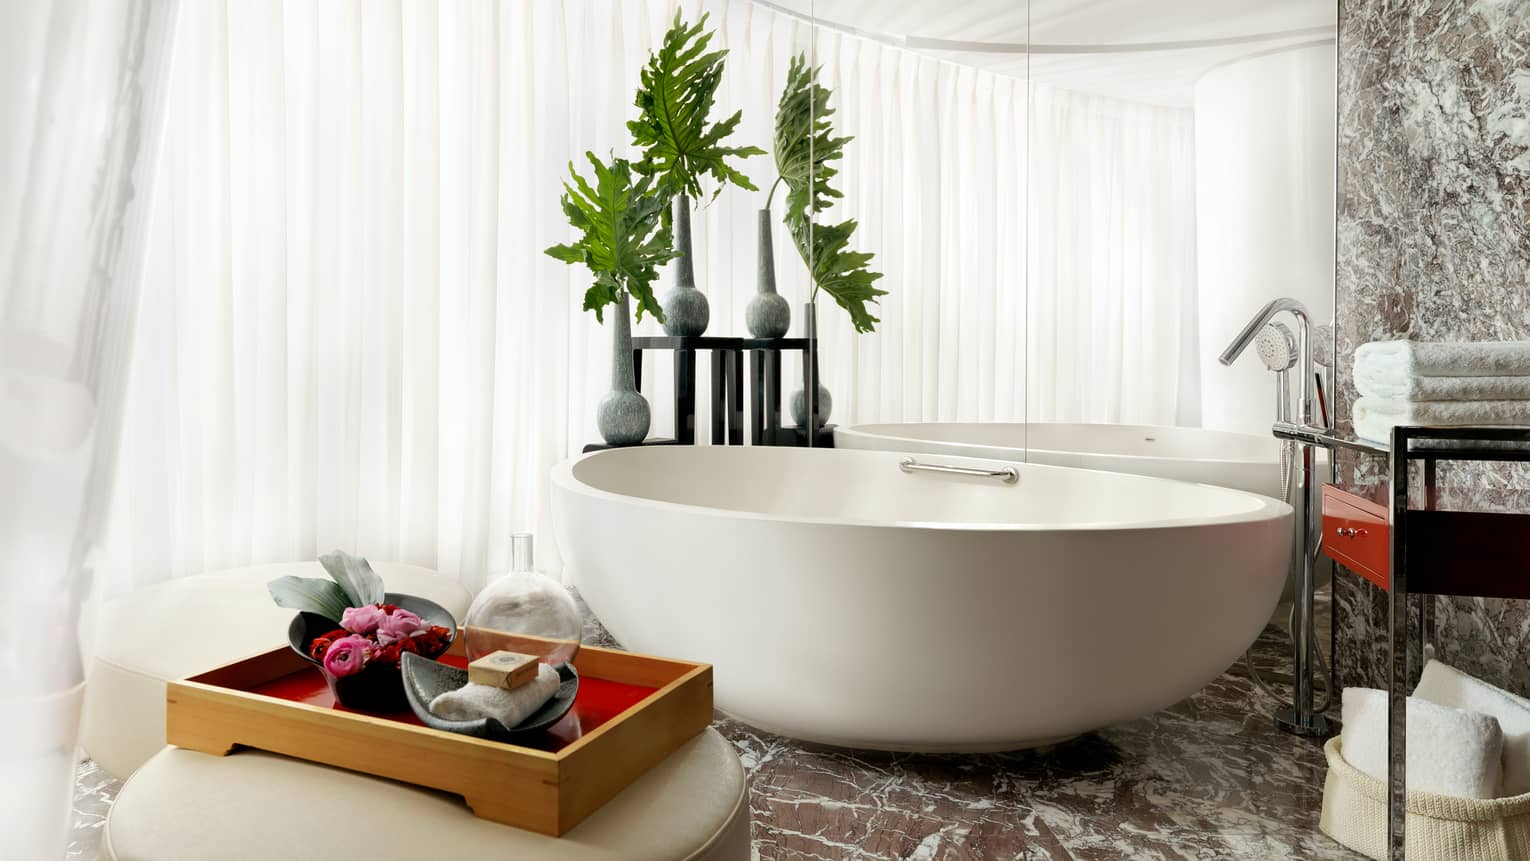 Free-standing white bathroom tub with modern vases holding decorative leaves, white stools with red tray